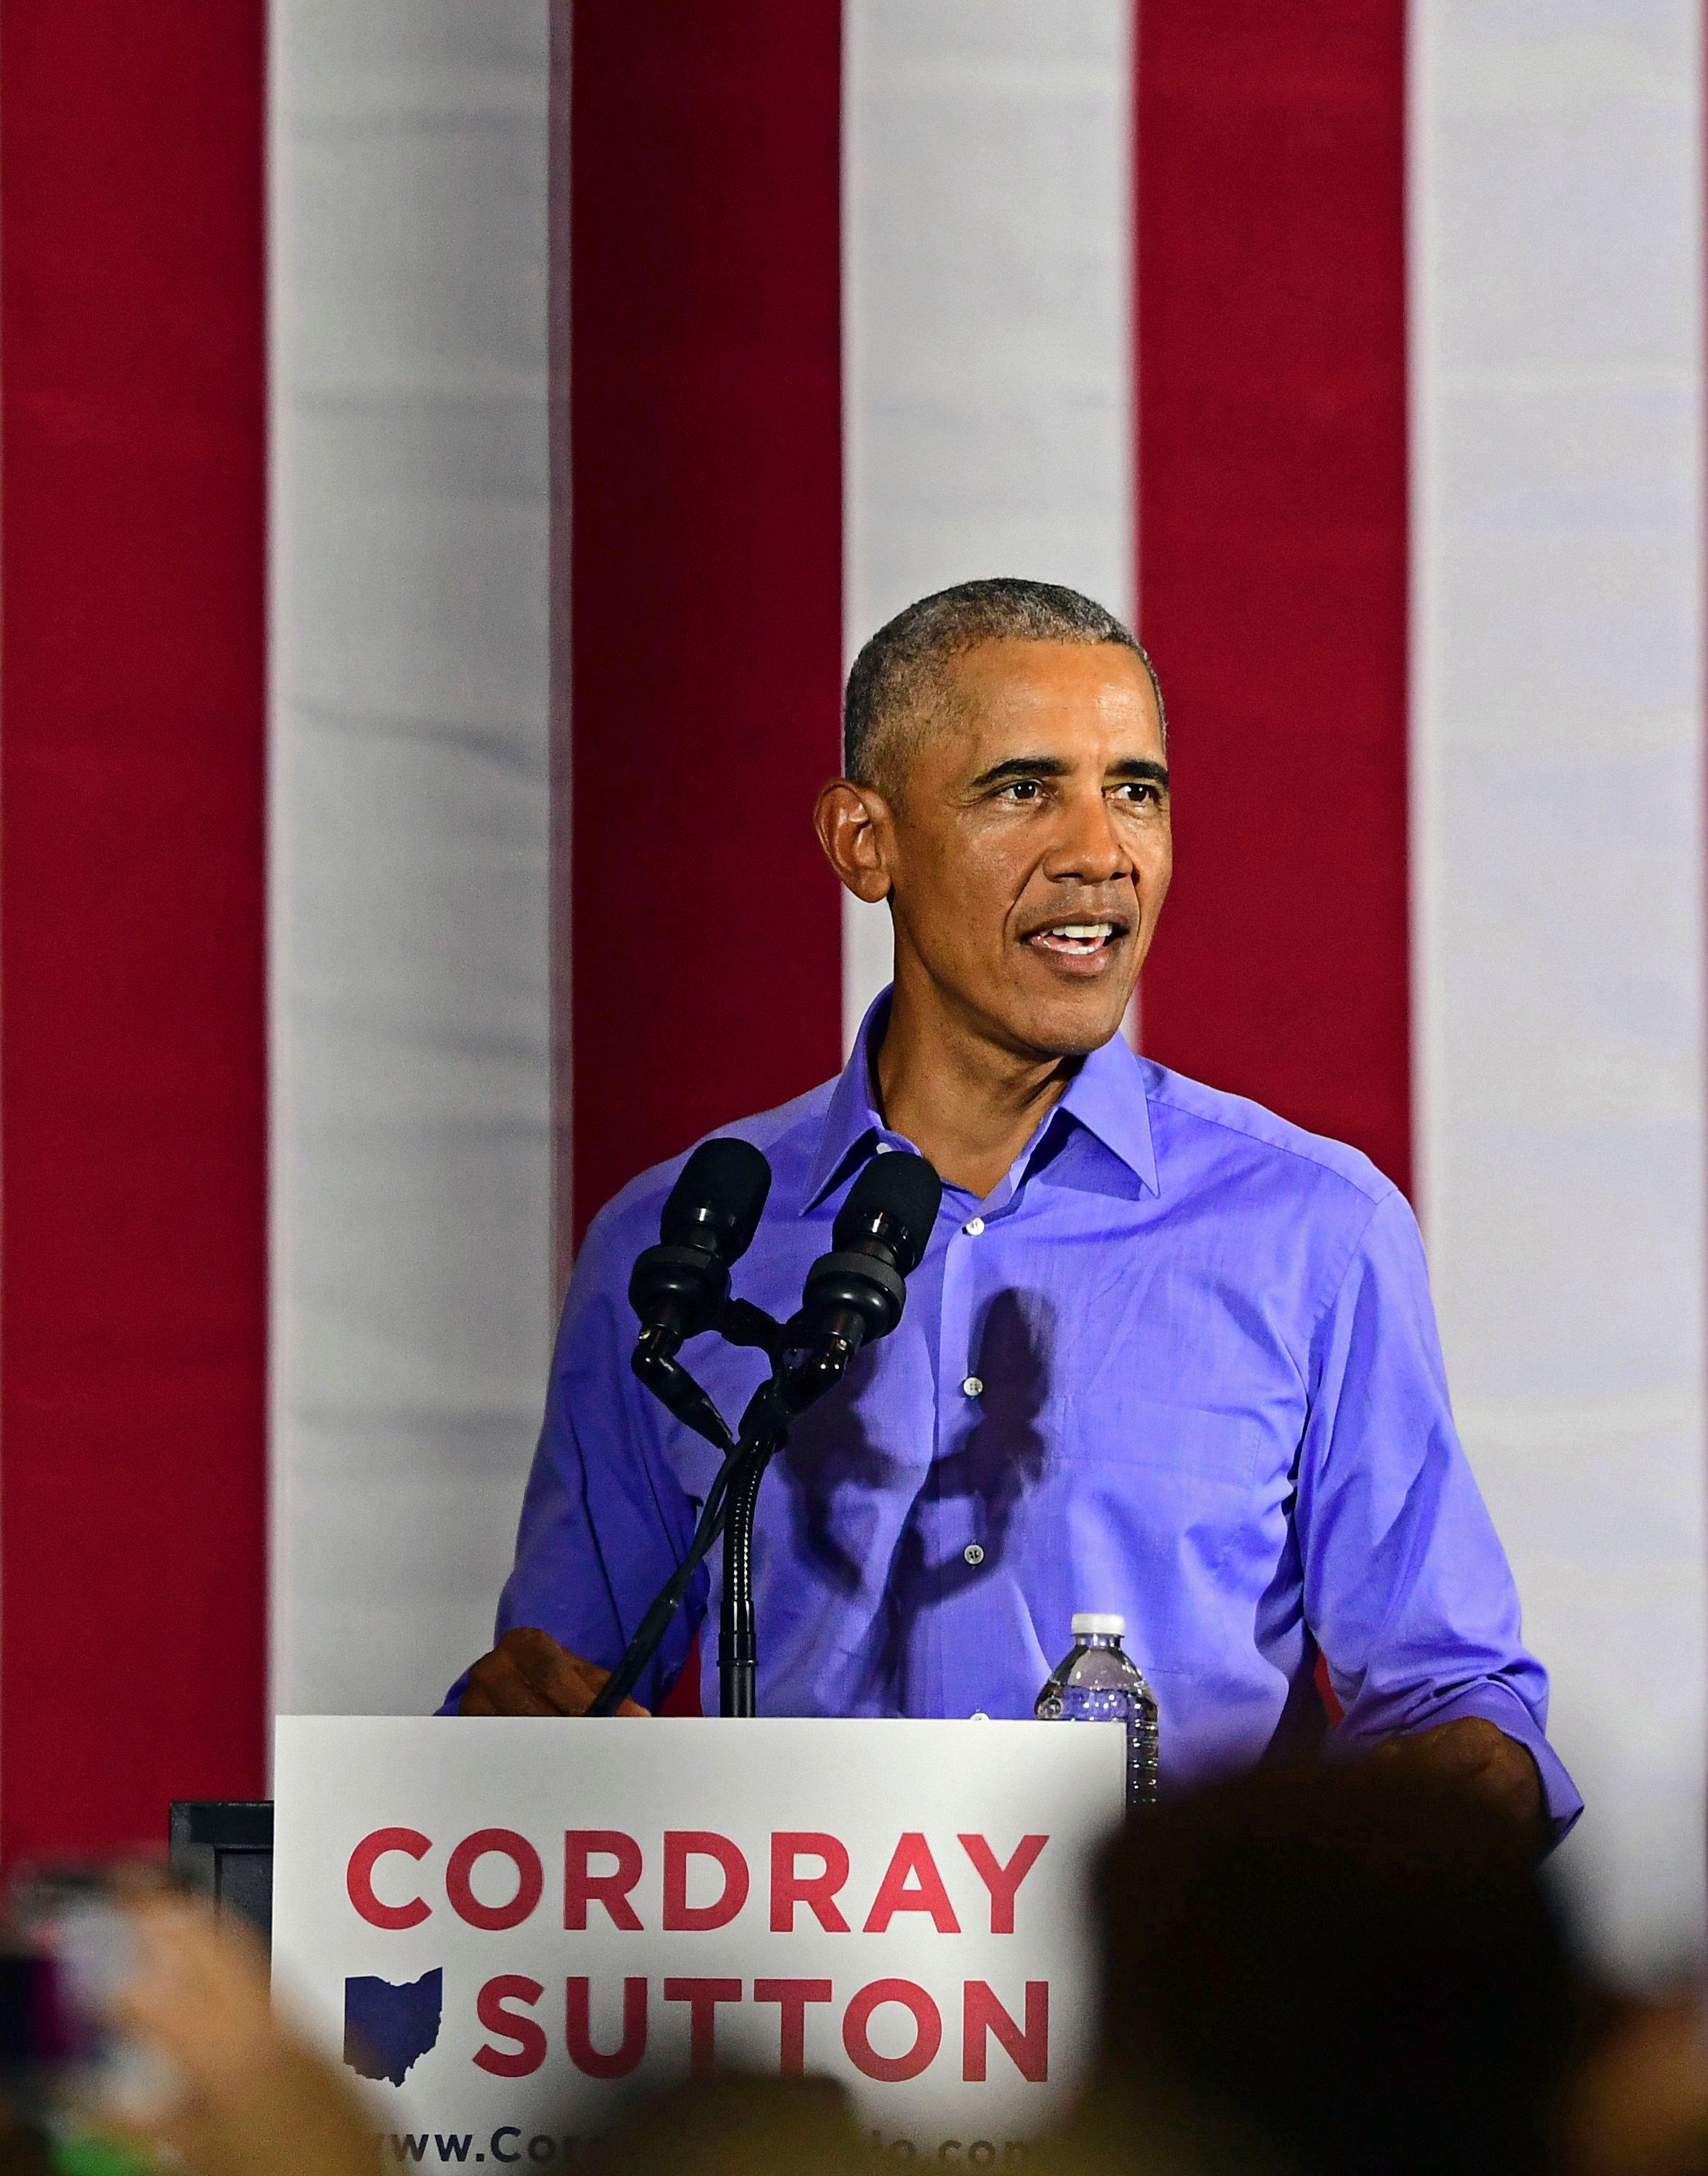 Former President Barack Obama has re-emerged as a force of the campaign trail for Democrats after a period of restraint. He l